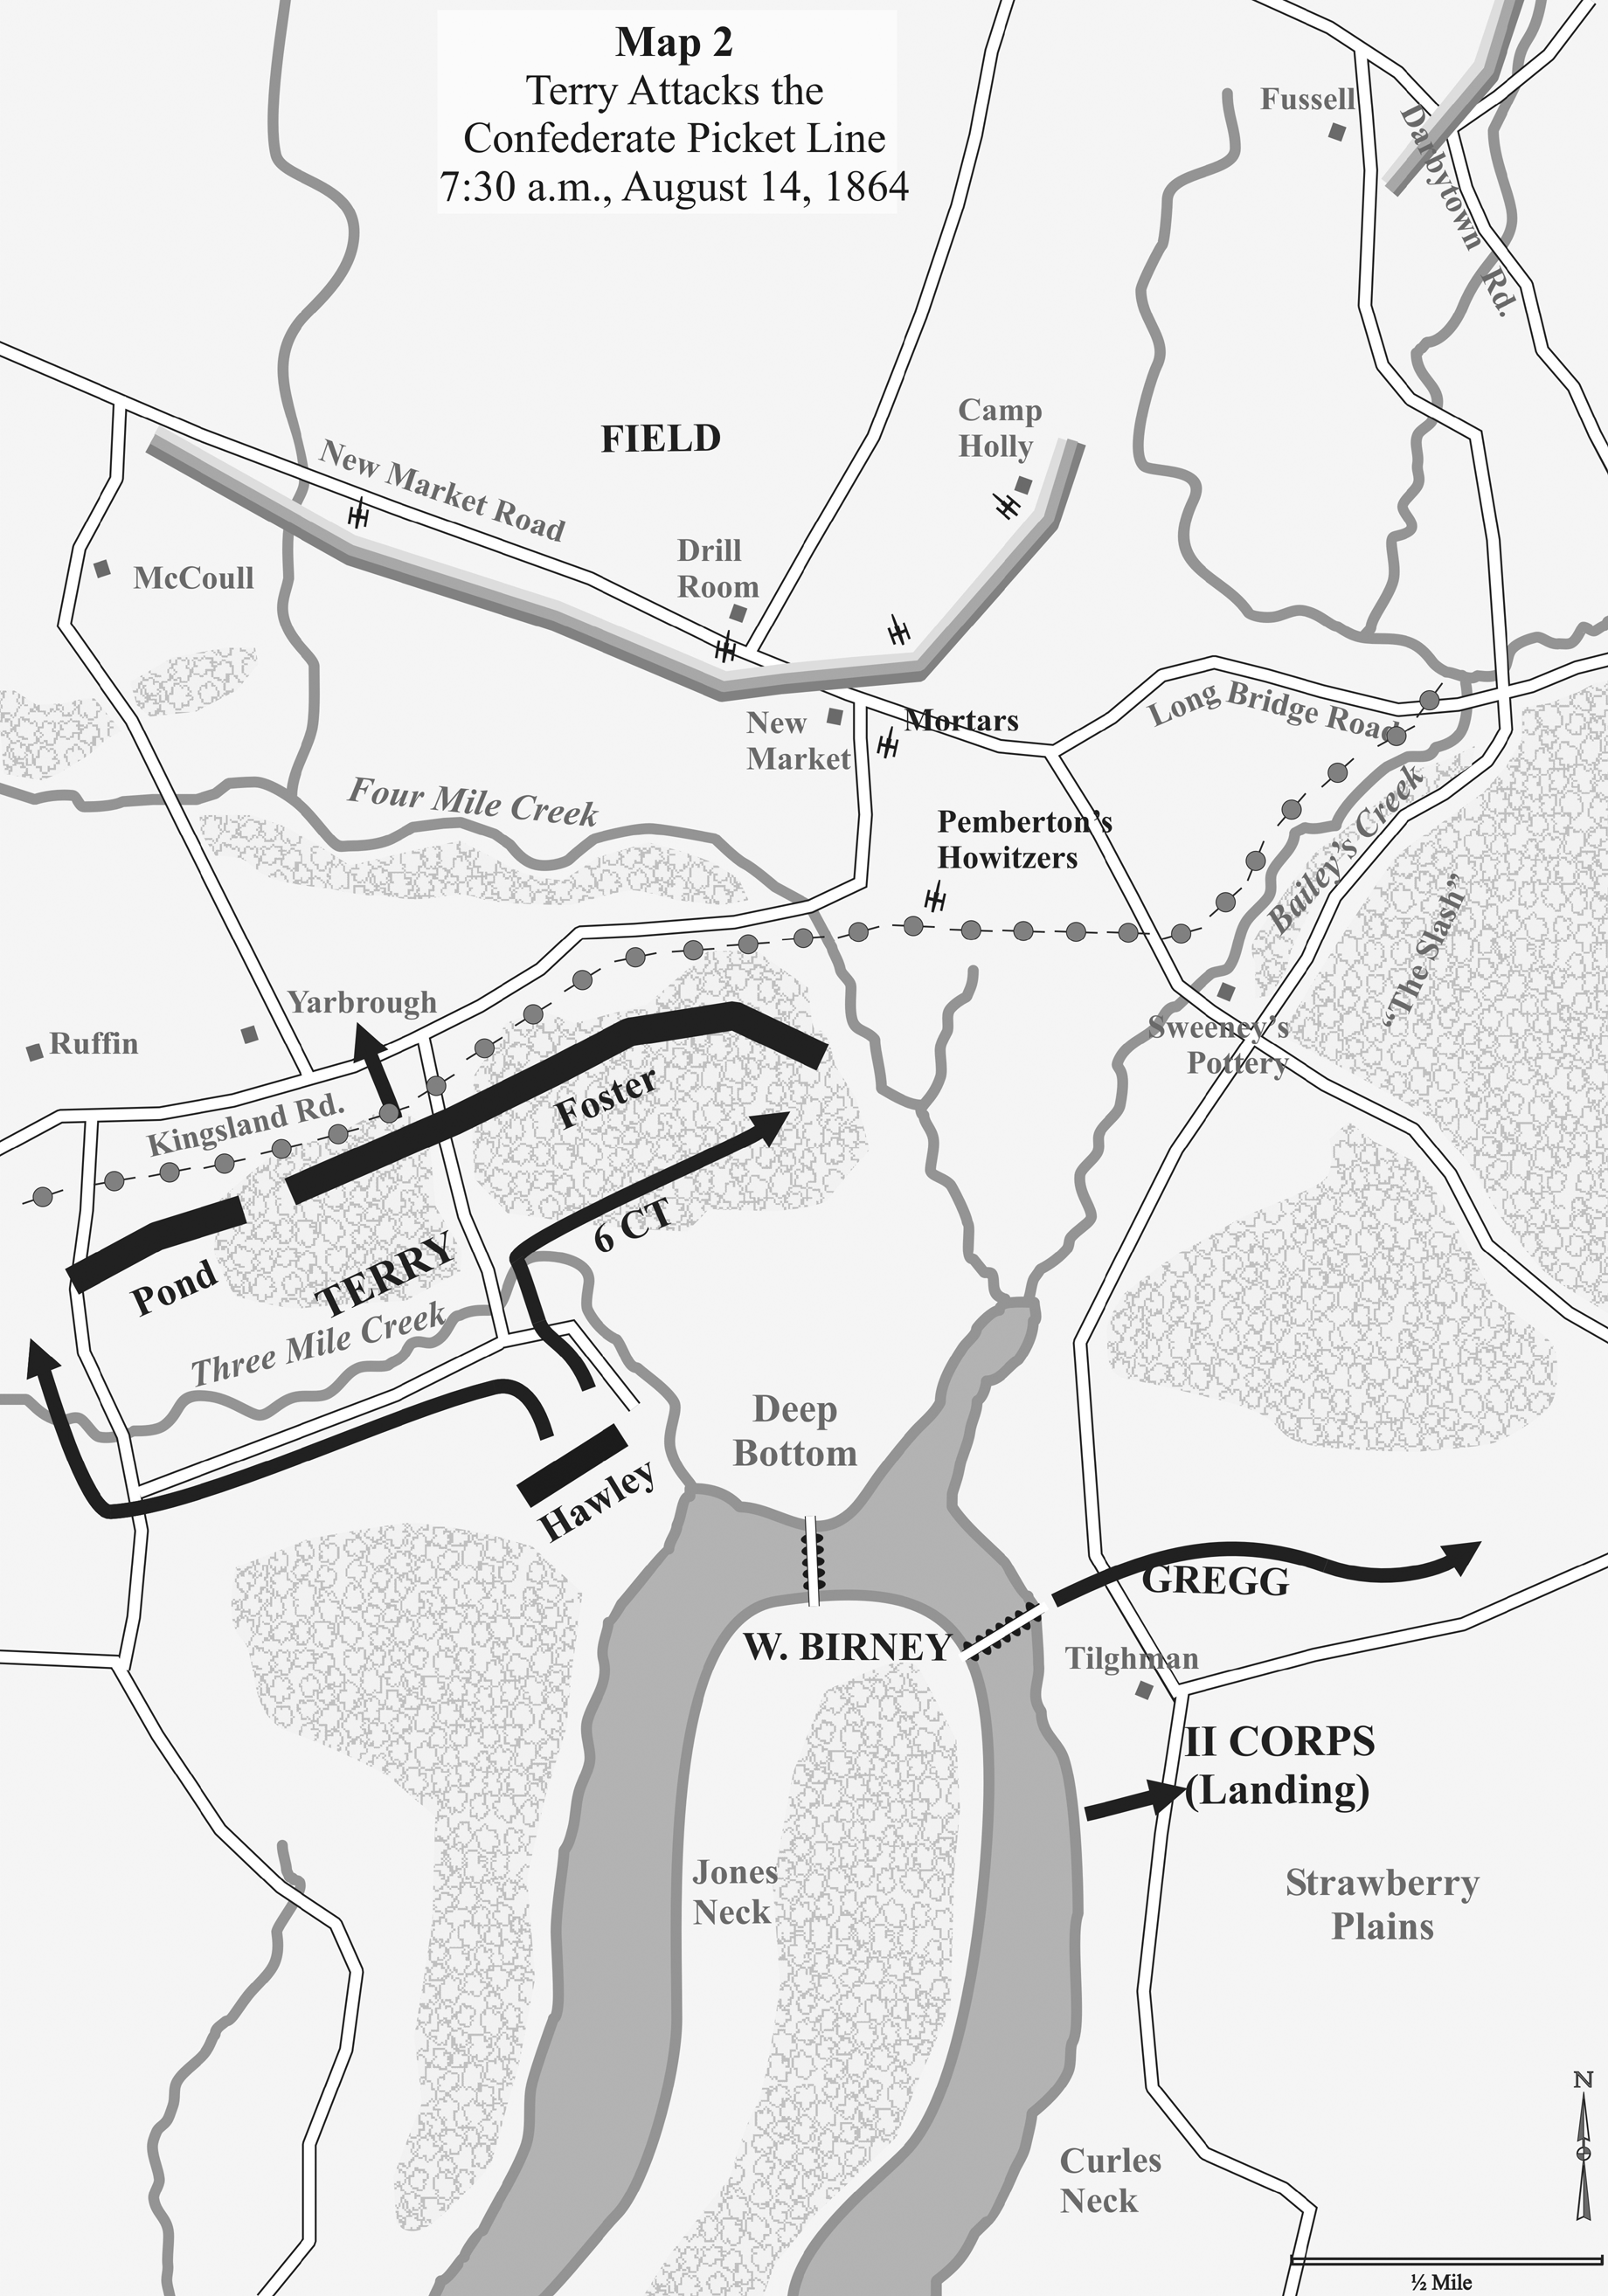 Horn Weldon RR Battles Second Deep Bottom Map 2: Terry Attacks the Confederate Picket Line 7:30 a.m., August 14, 1864